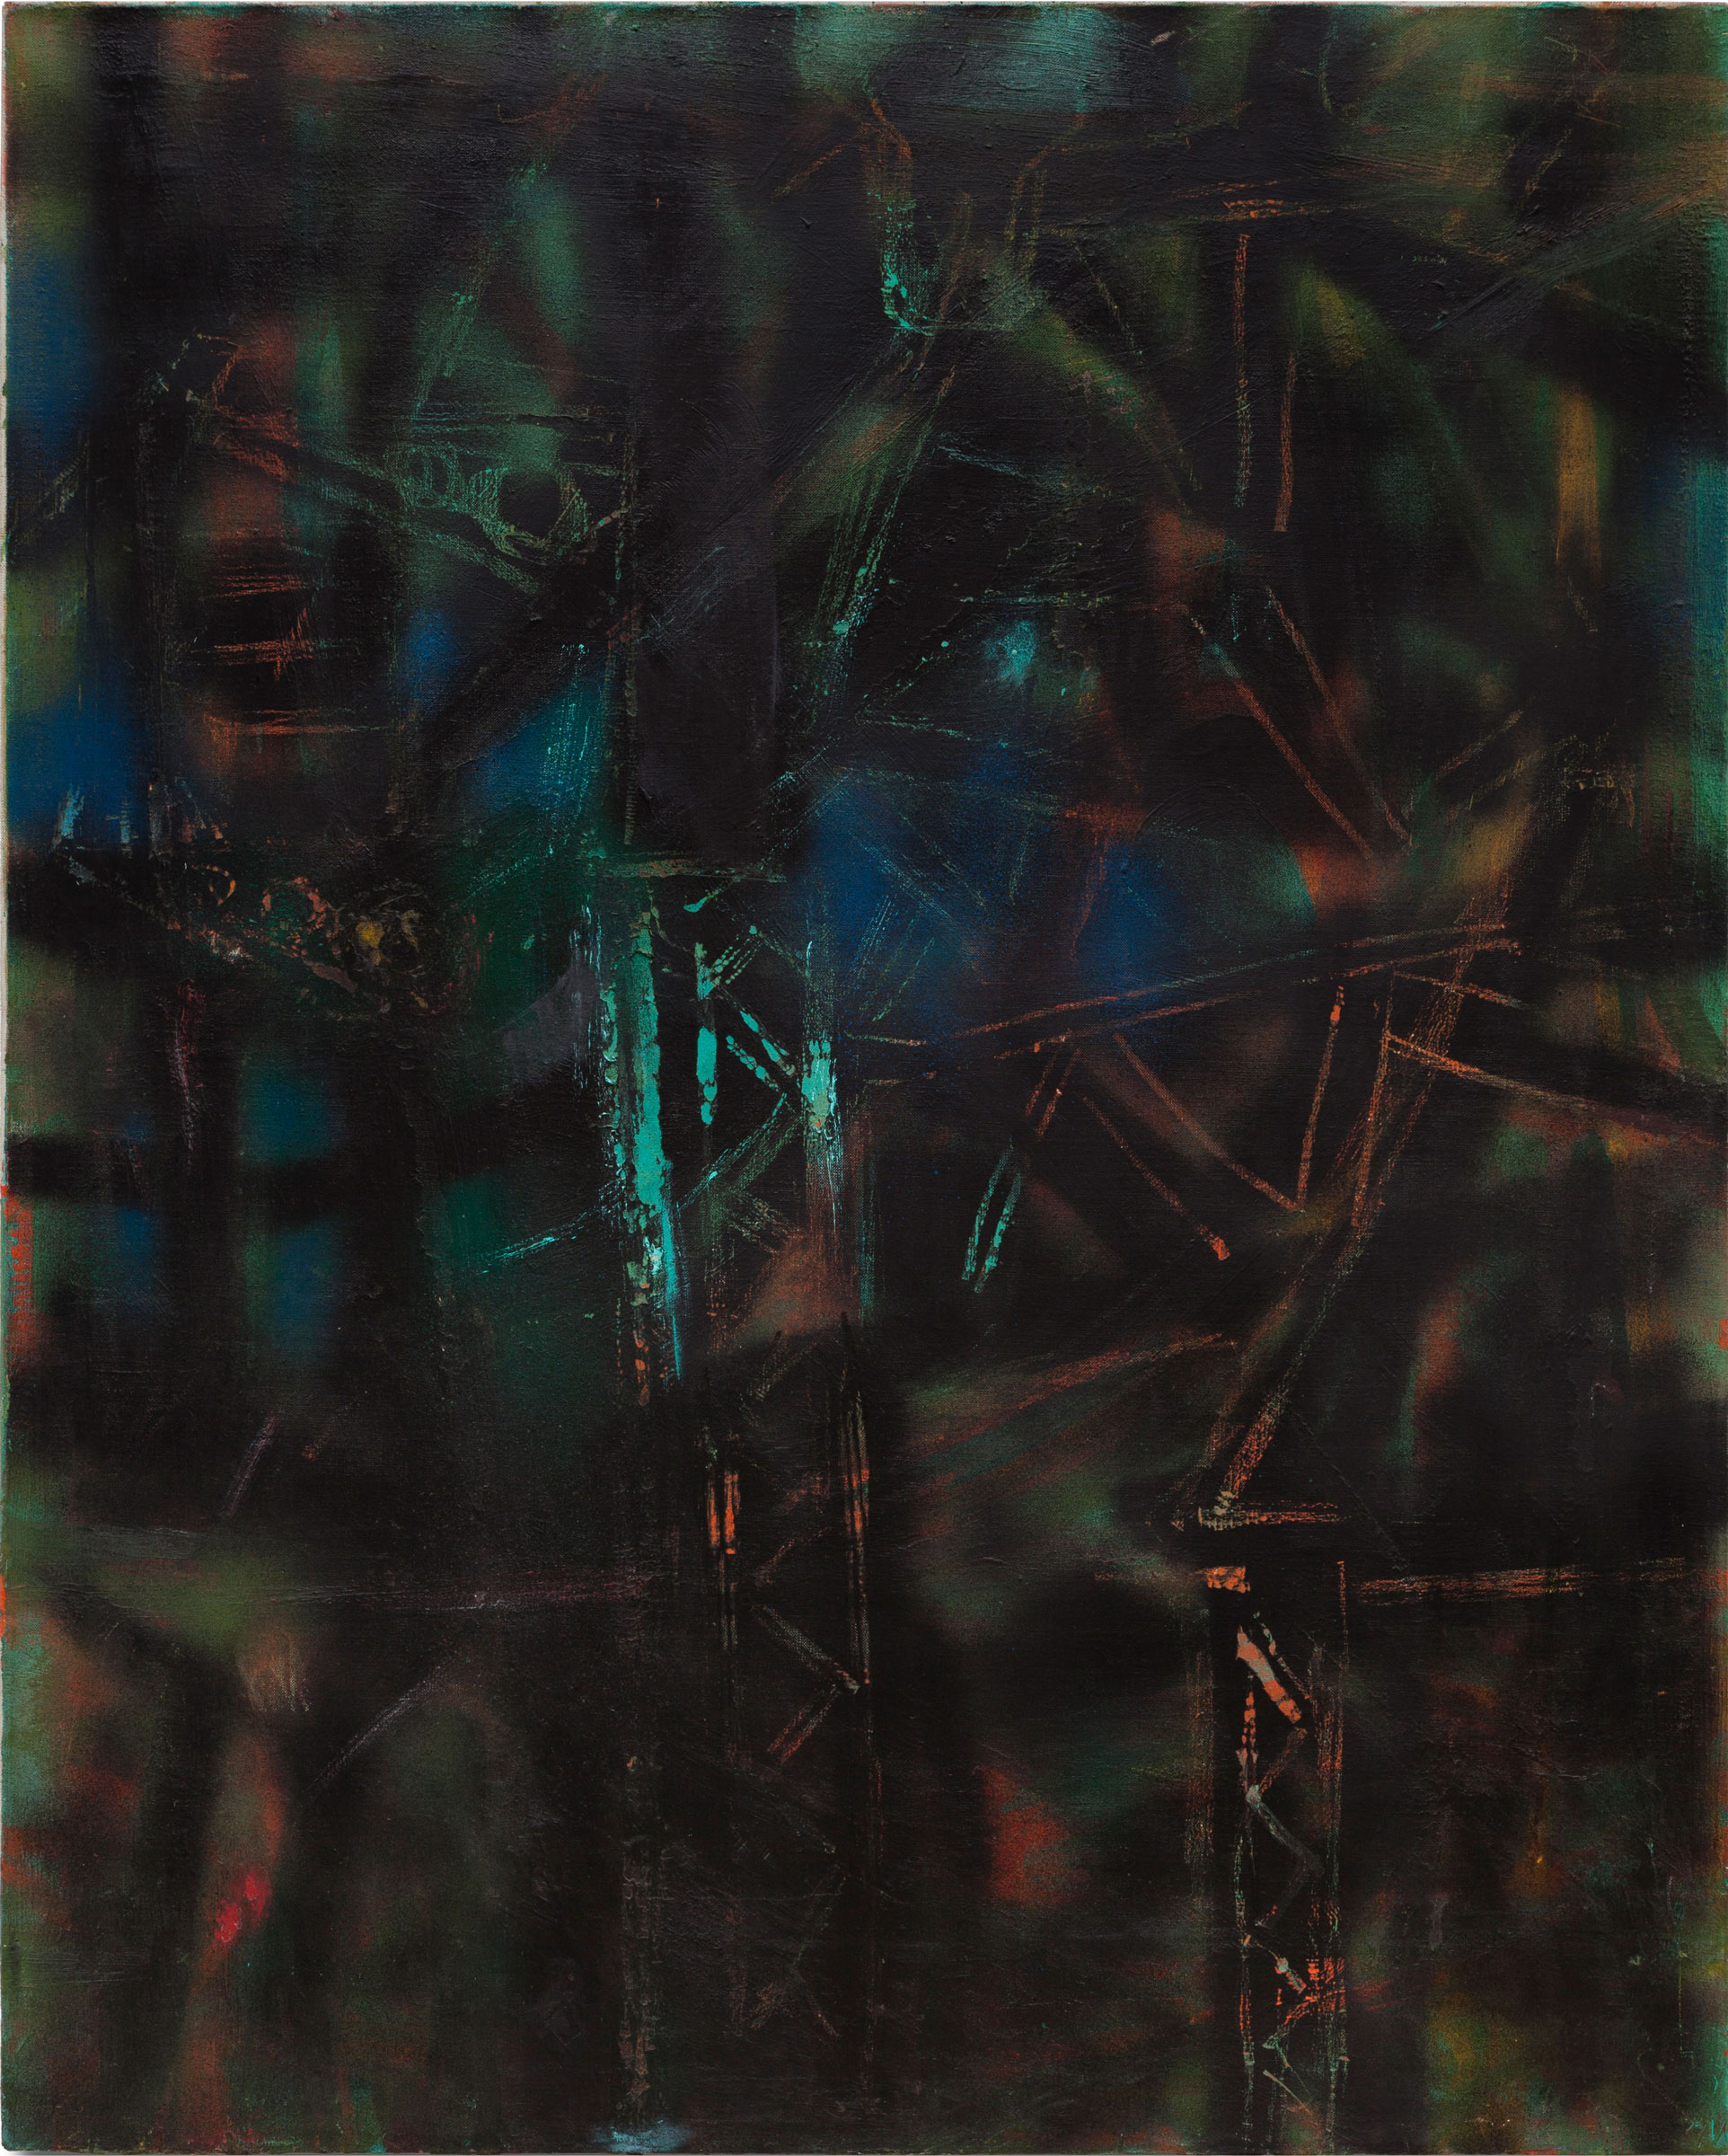 Hedda Sterne,  Untitled , c. 1953, Oil and spray paint on canvas, 42 in. x 34 in.; Collection of the Hedda Sterne Foundation, New York